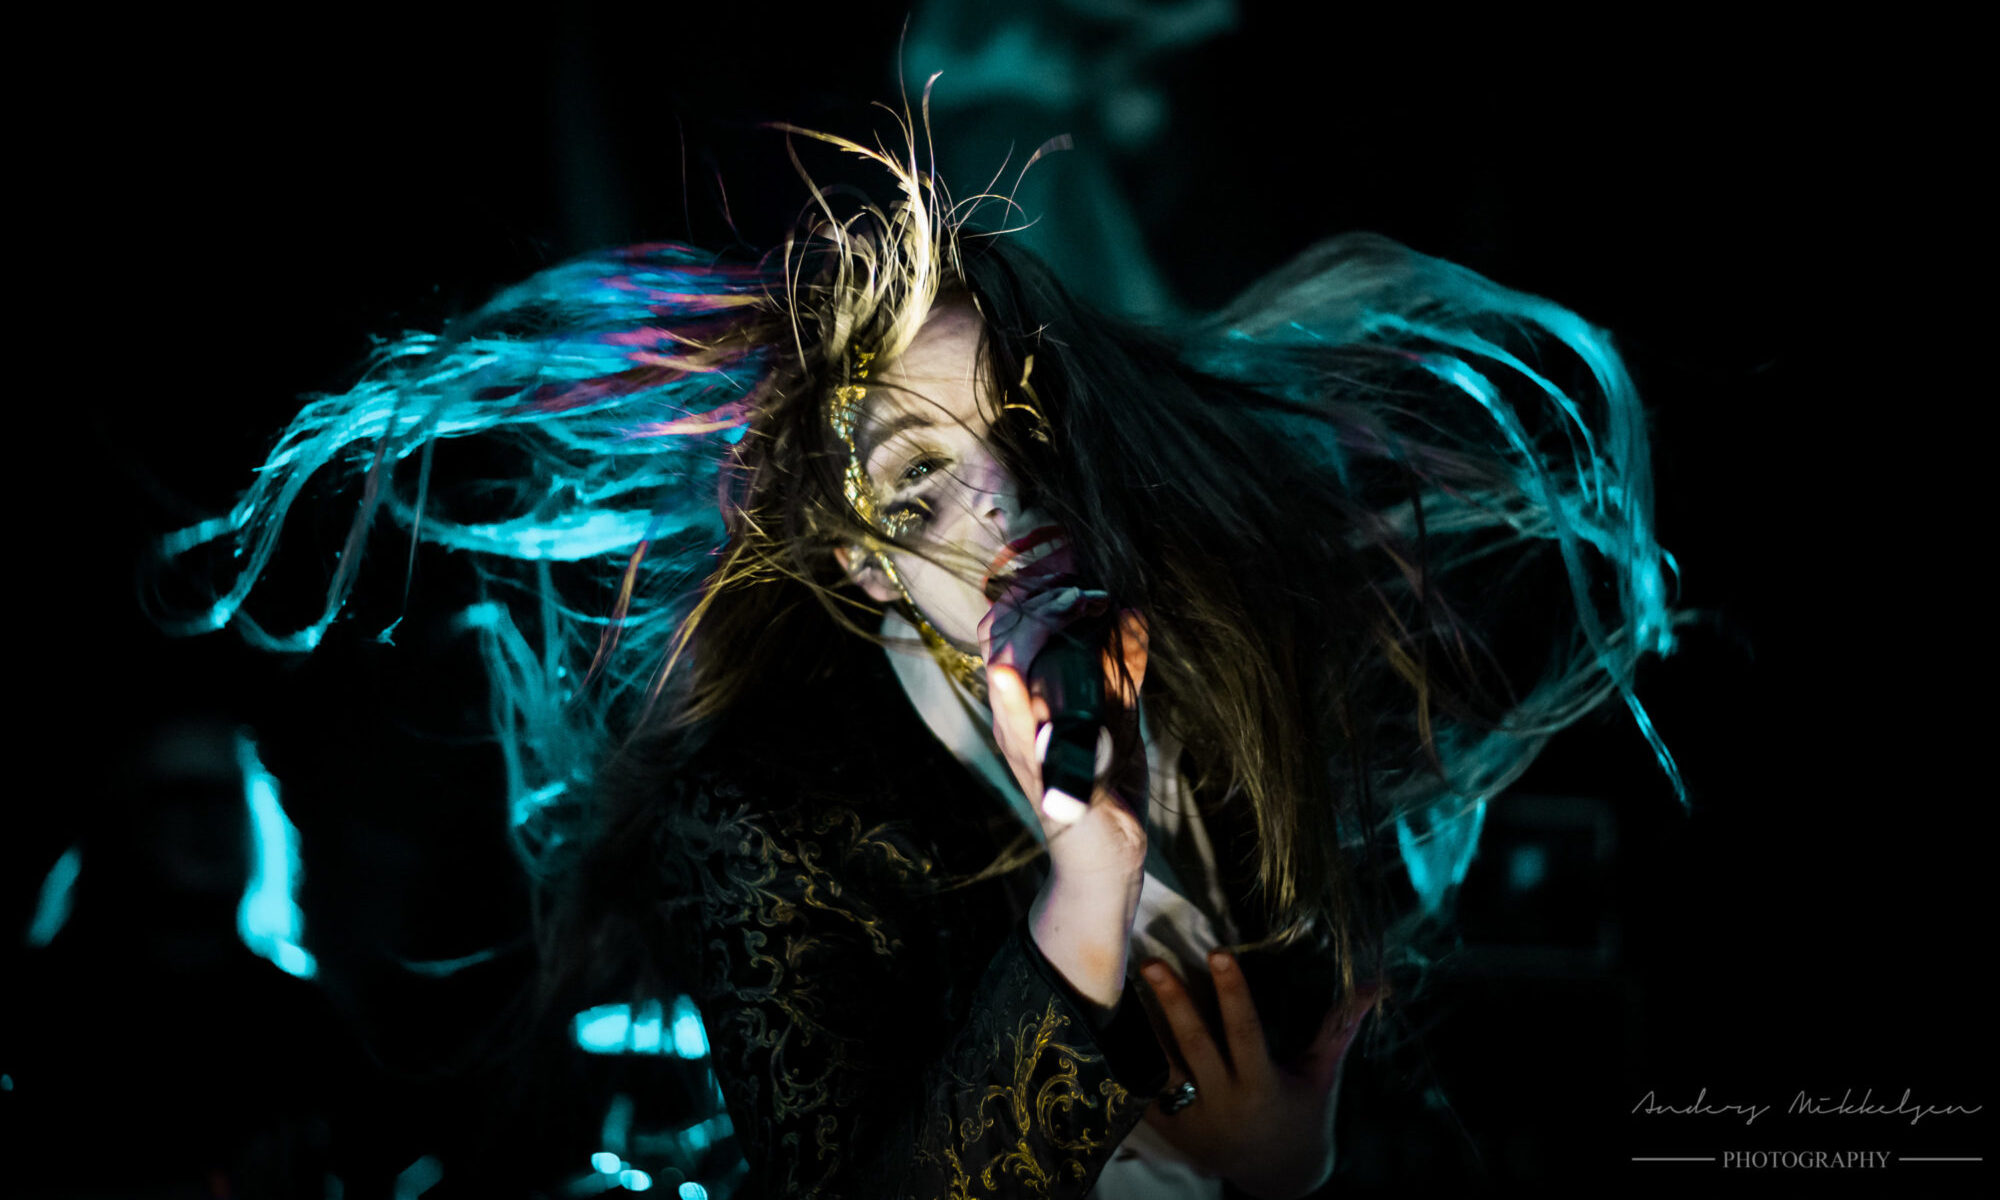 Ethereal Kingdoms live review by metaladay.dk. Sofia Schmidt singing on stage at copenhagen metal fest 2019